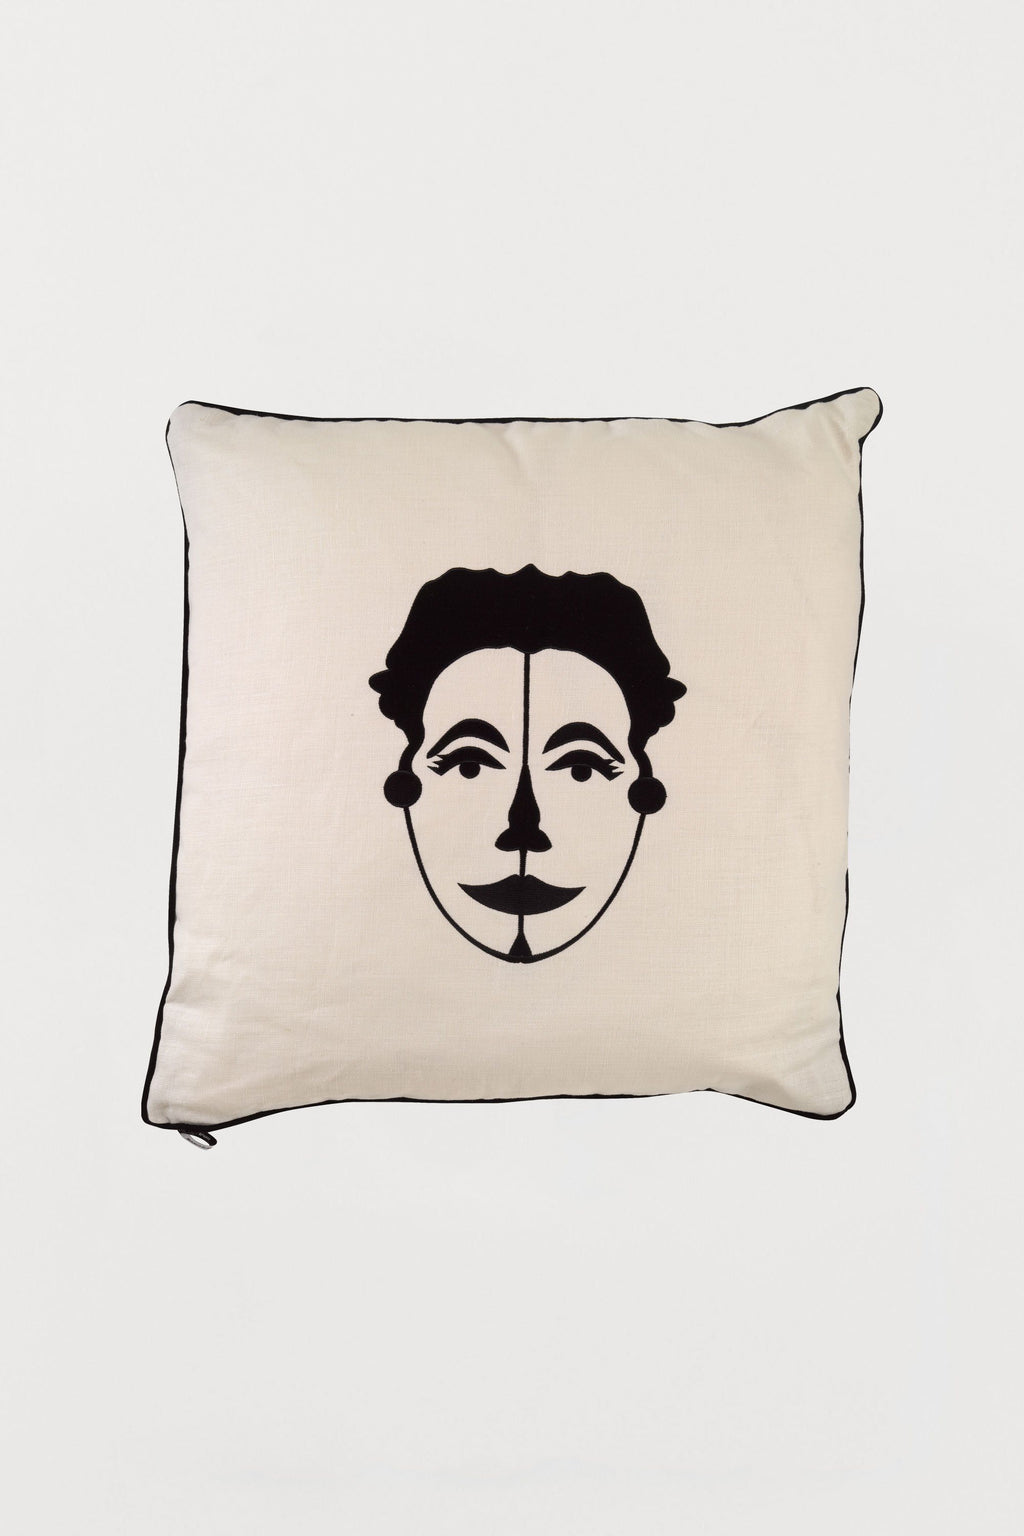 Embroidered Cushion African Mask Woman A - Bianca Elgar